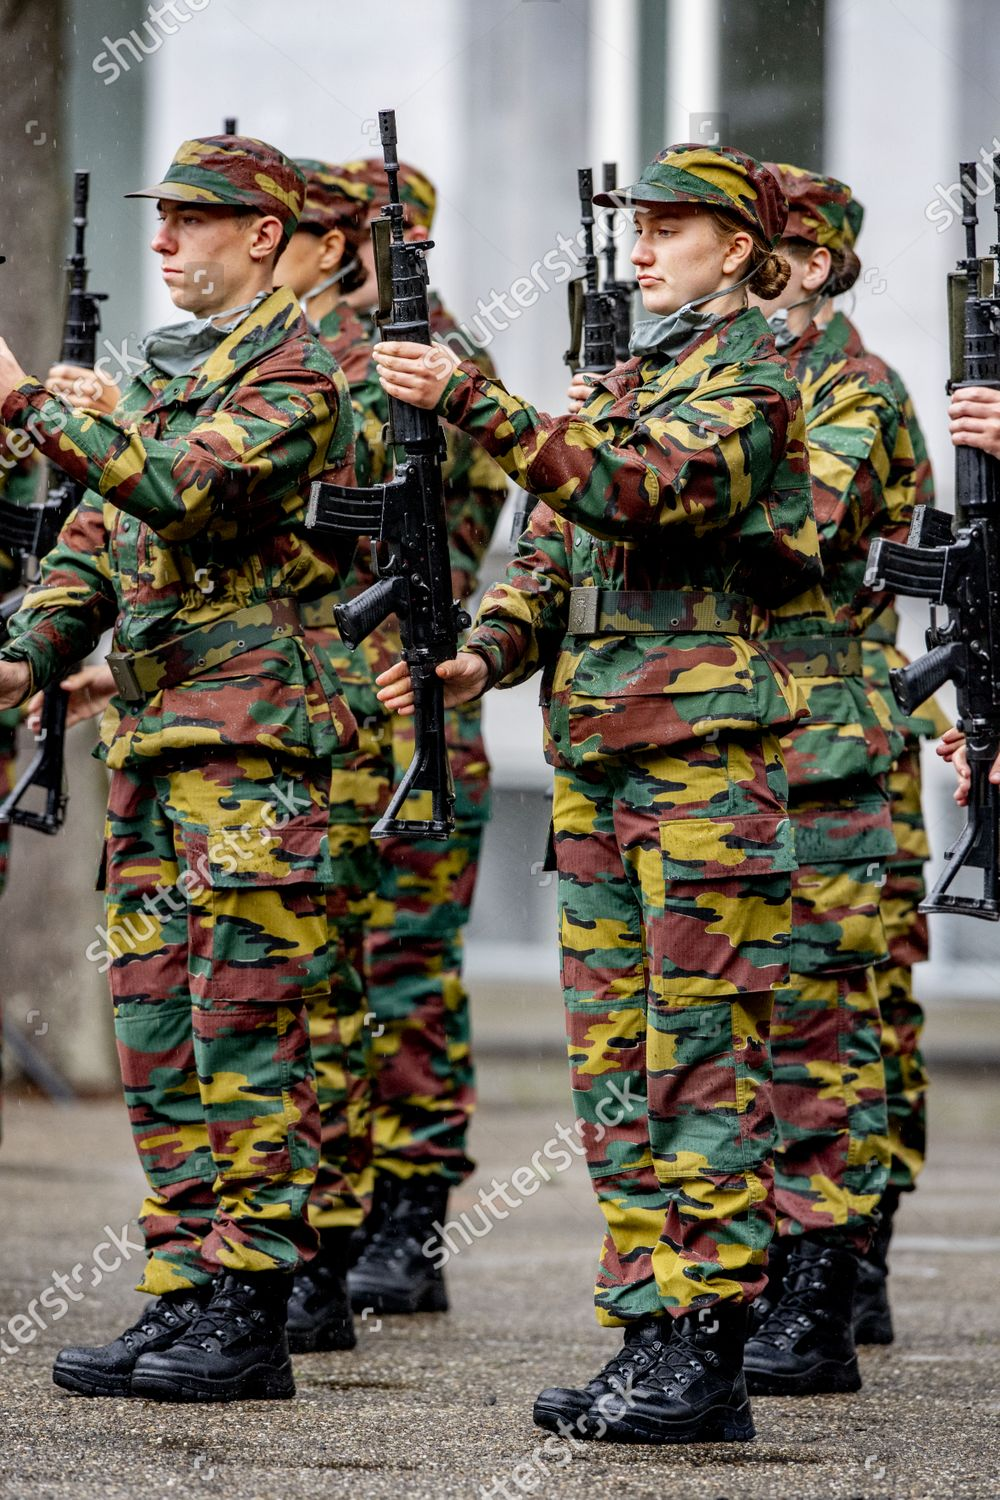 belgian-royals-attend-ceremony-for-the-presentation-of-the-blue-berets-royal-military-academy-erm-brussels-belgium-shutterstock-editorial-10790505g.jpg